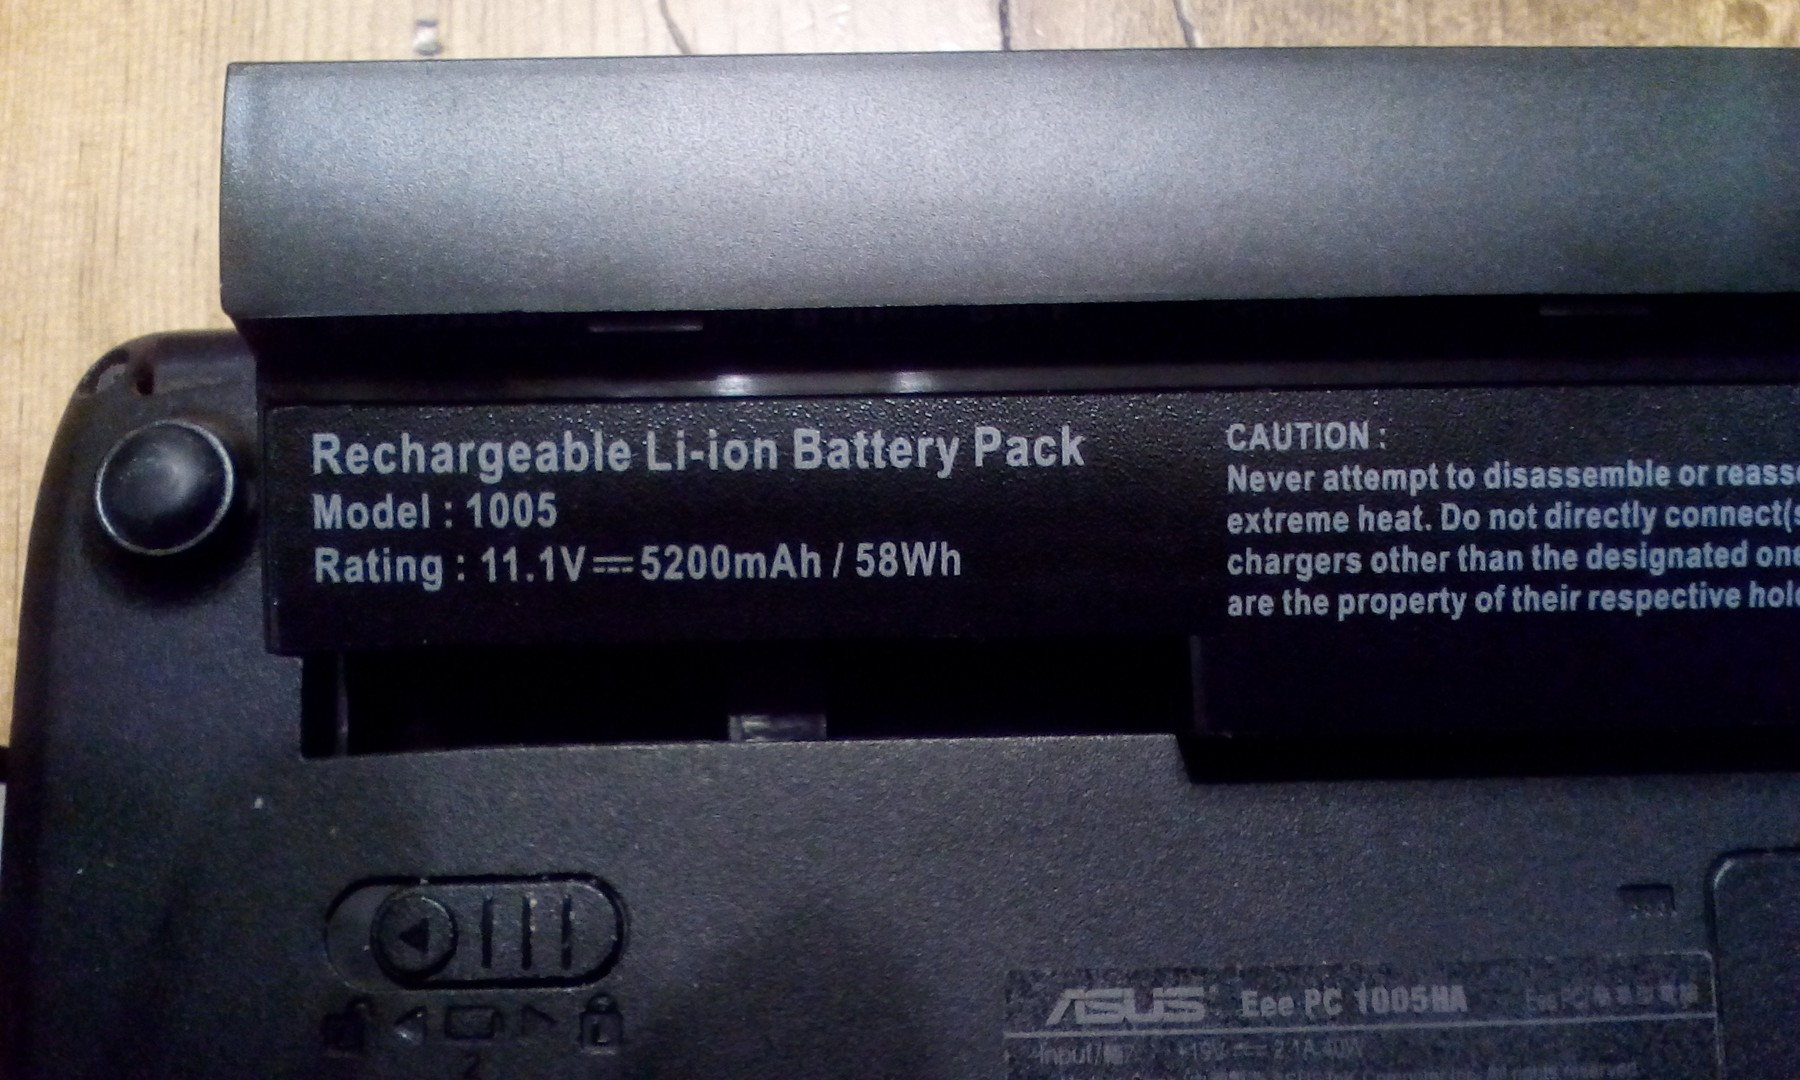 Exact replacement for original battery pack at a great price